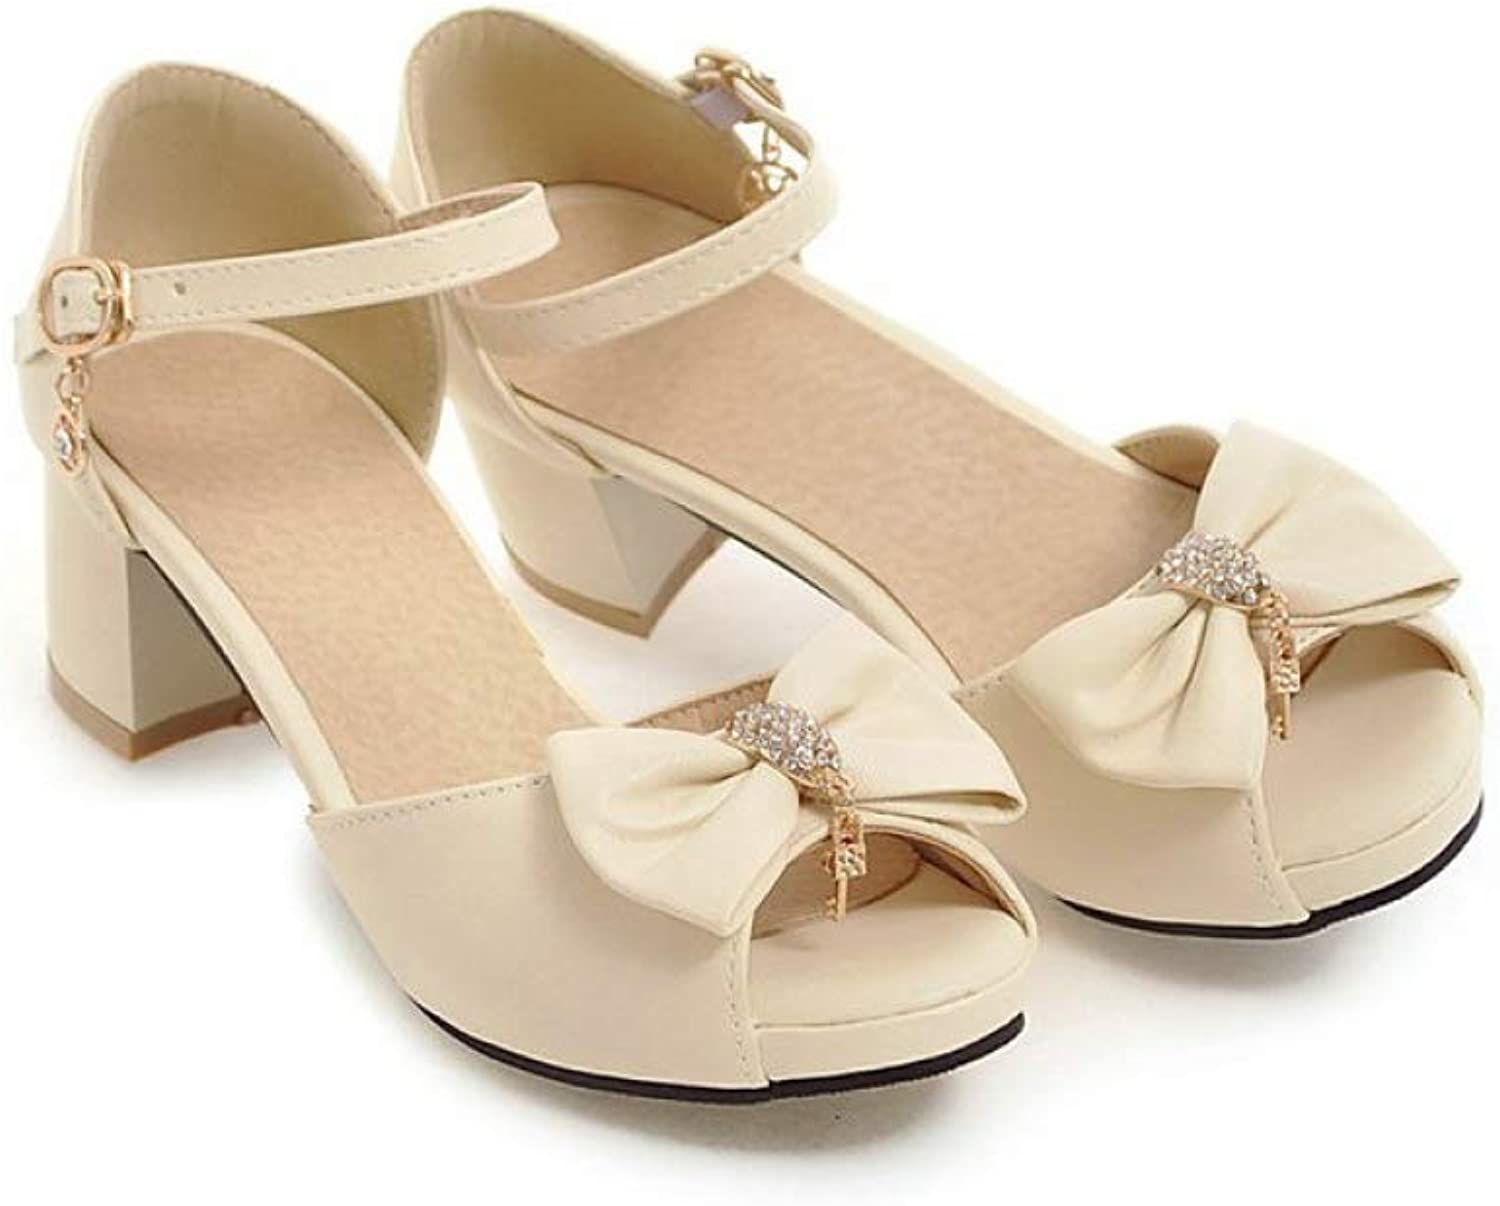 T-JULY Sandals for Women Open Toe Bowknot Square Heel Casual Summer Sweet Style Ladies shoes